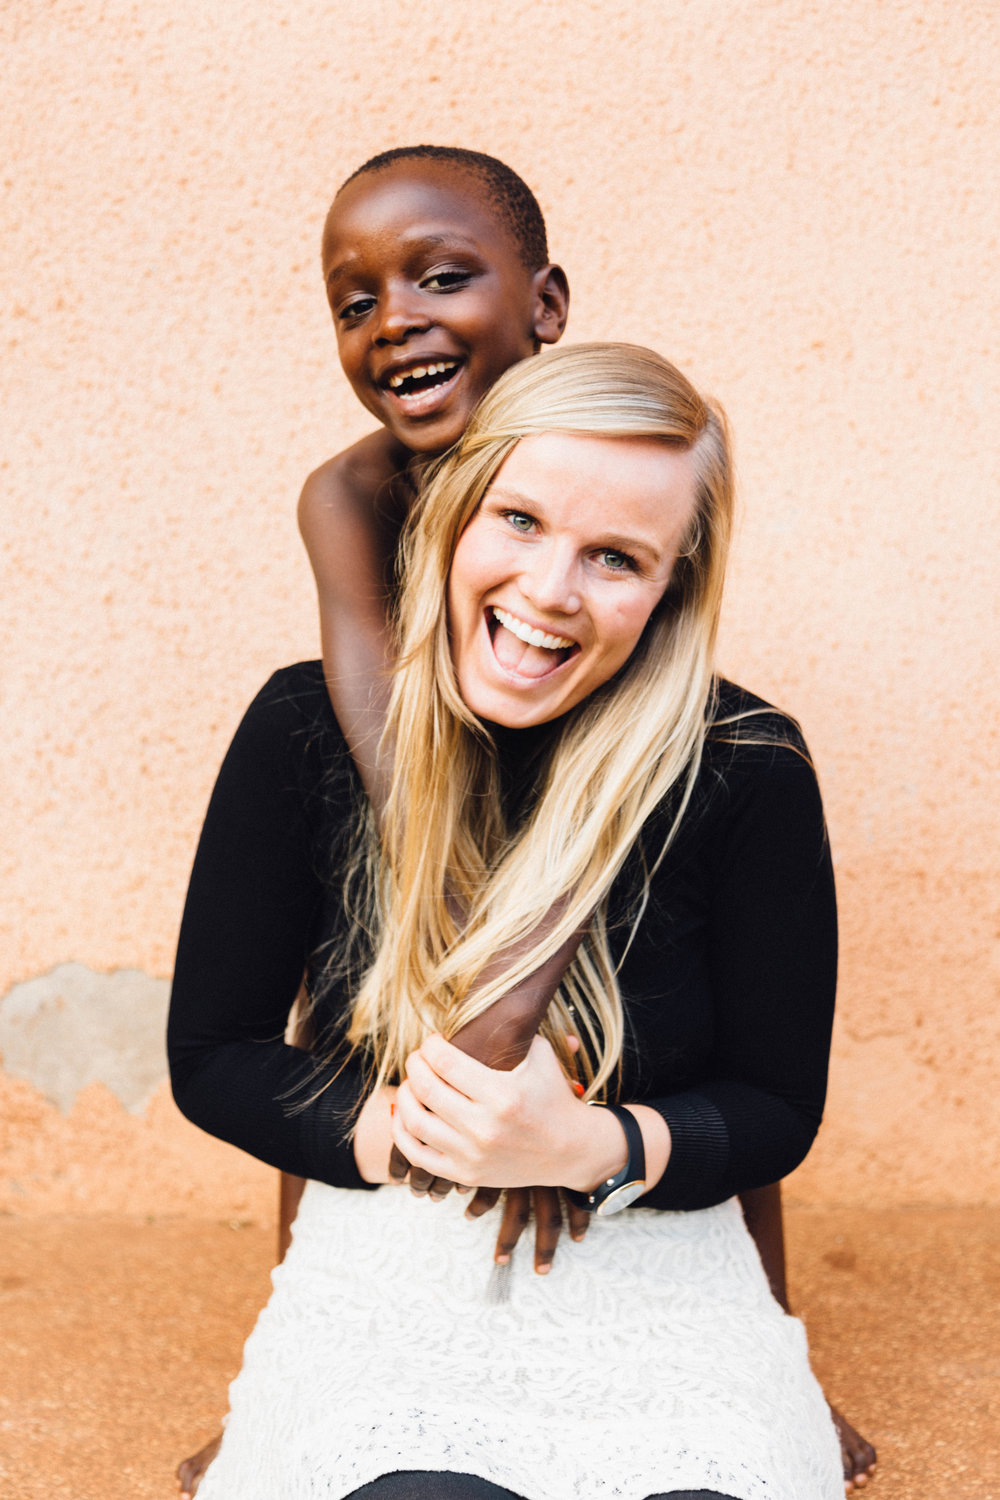 Sarah Nininger: President Sarah has been the visionary and driving force behind Action in Africa since inception, serving as the organization's President for over a decade. As President, Sarah is responsible for everything from strategic planning, fundraising, and operational execution to participating in dance classes at the Center and sleeping at the hospital when our students get malaria. Sarah has spent extensive time studying non-profit management, taking undergraduate courses on education-based non-profit strategy and volunteering for organizations like the Special Olympics and Sexual Assault Victims Services. While her broader objective is to provide students and community members with educational opportunity and social services, there has always been a special place in Sarah's heart for those with special needs. This passion, informed by personal and academic experience, has driven Sarah to institute various programs at Action in Africa tailored towards the sick and disabled, including a Women to Women Group for vulnerable women and a fund to support children with special needs. Likewise, Sarah fervently believes in the importance of personal empowerment, viewing Action in Africa as an instrument to help students realize their own potential. In particular, Sarah has focused her efforts on empowering high schoolers, working with career-oriented Ugandan professionals to put on panels for our students. By introducing students to doctors,creative artists, and entrepreneurs who grew up in villages similar to Nakuwadde and households like their own, Sarah has inspired our students to take control of their lives and dream bigger. Sarah, who writes in her journal every day, graduated from Chapman University with a degree in Integrated Educational Studies in 2012.